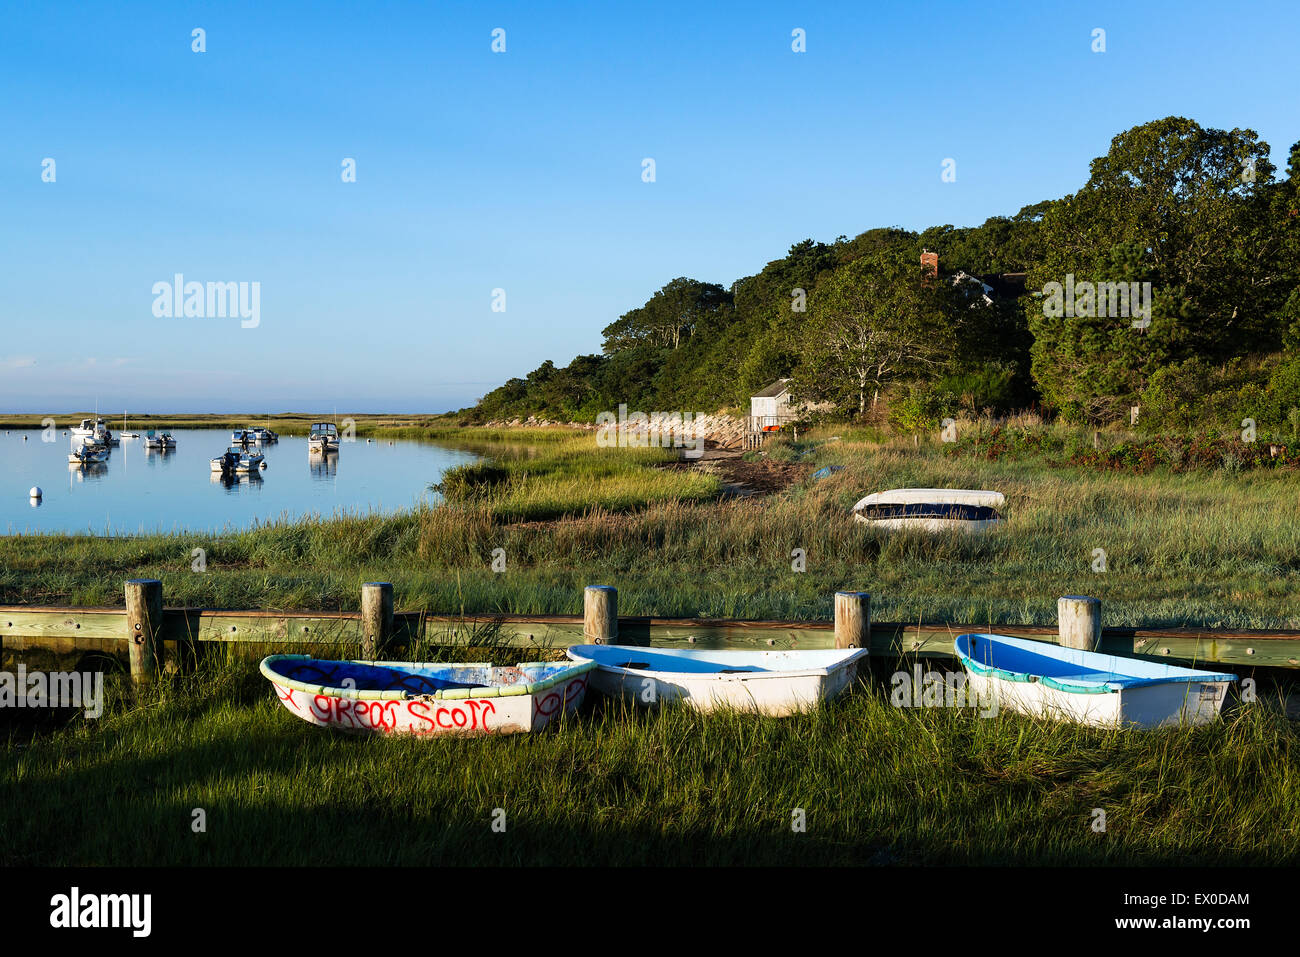 Picturesque Stetsons Cove, Chatham, Massachusetts, USA - Stock Image